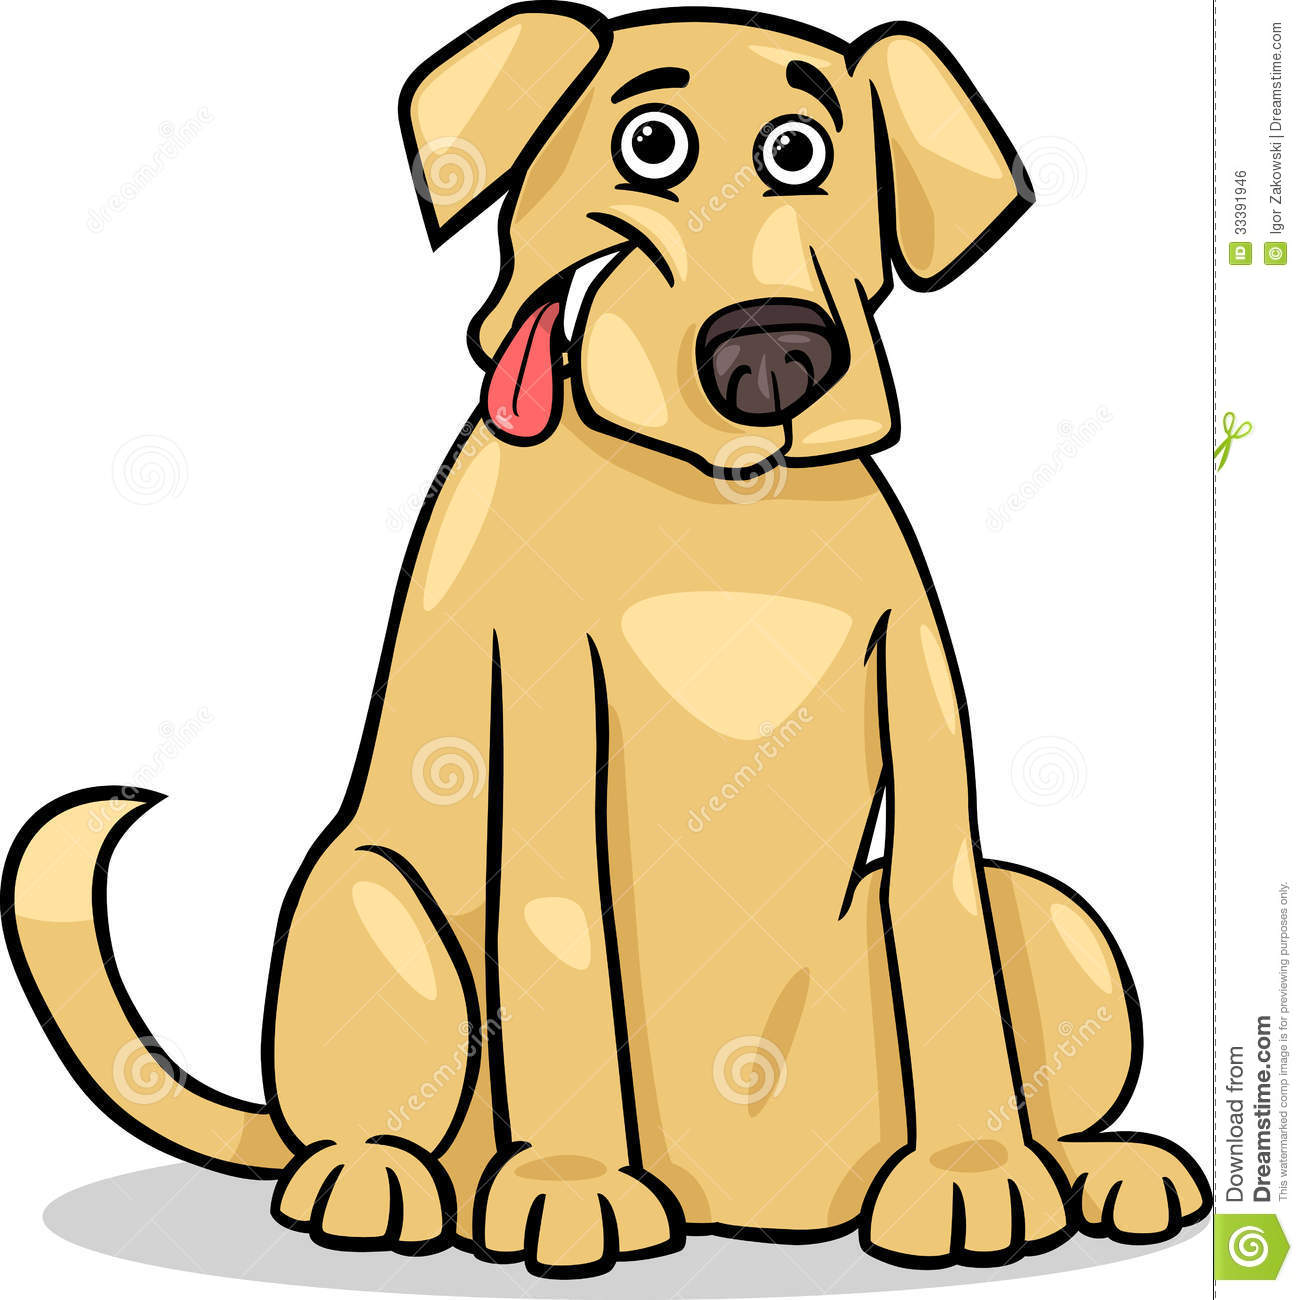 Yellow Lab Clipart - Clipart Kid